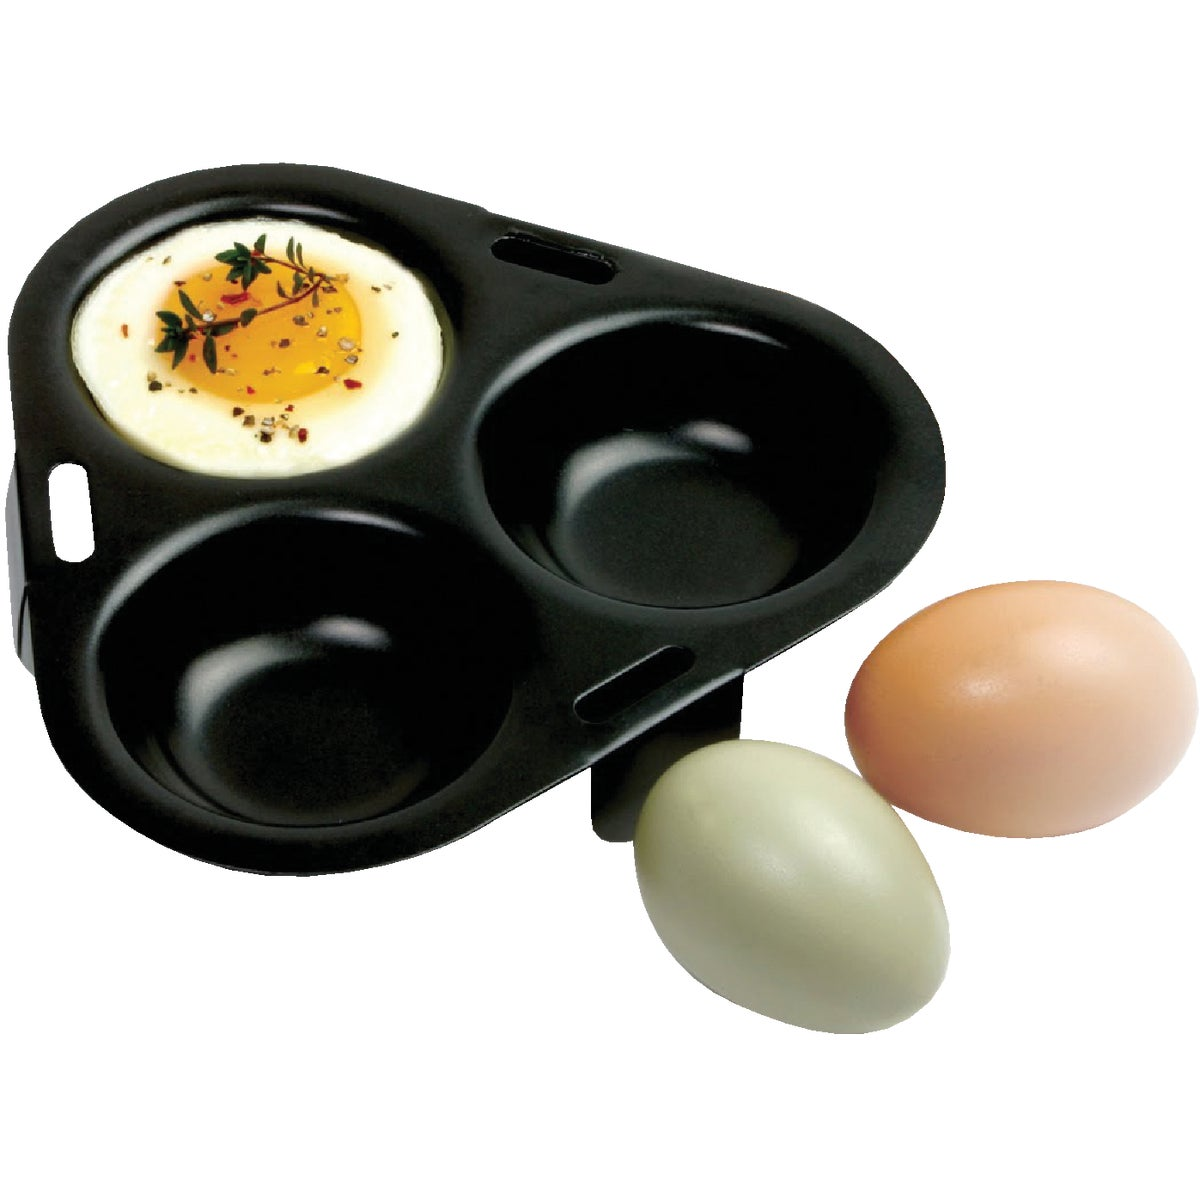 EGG POACHER - 973 by Norpro